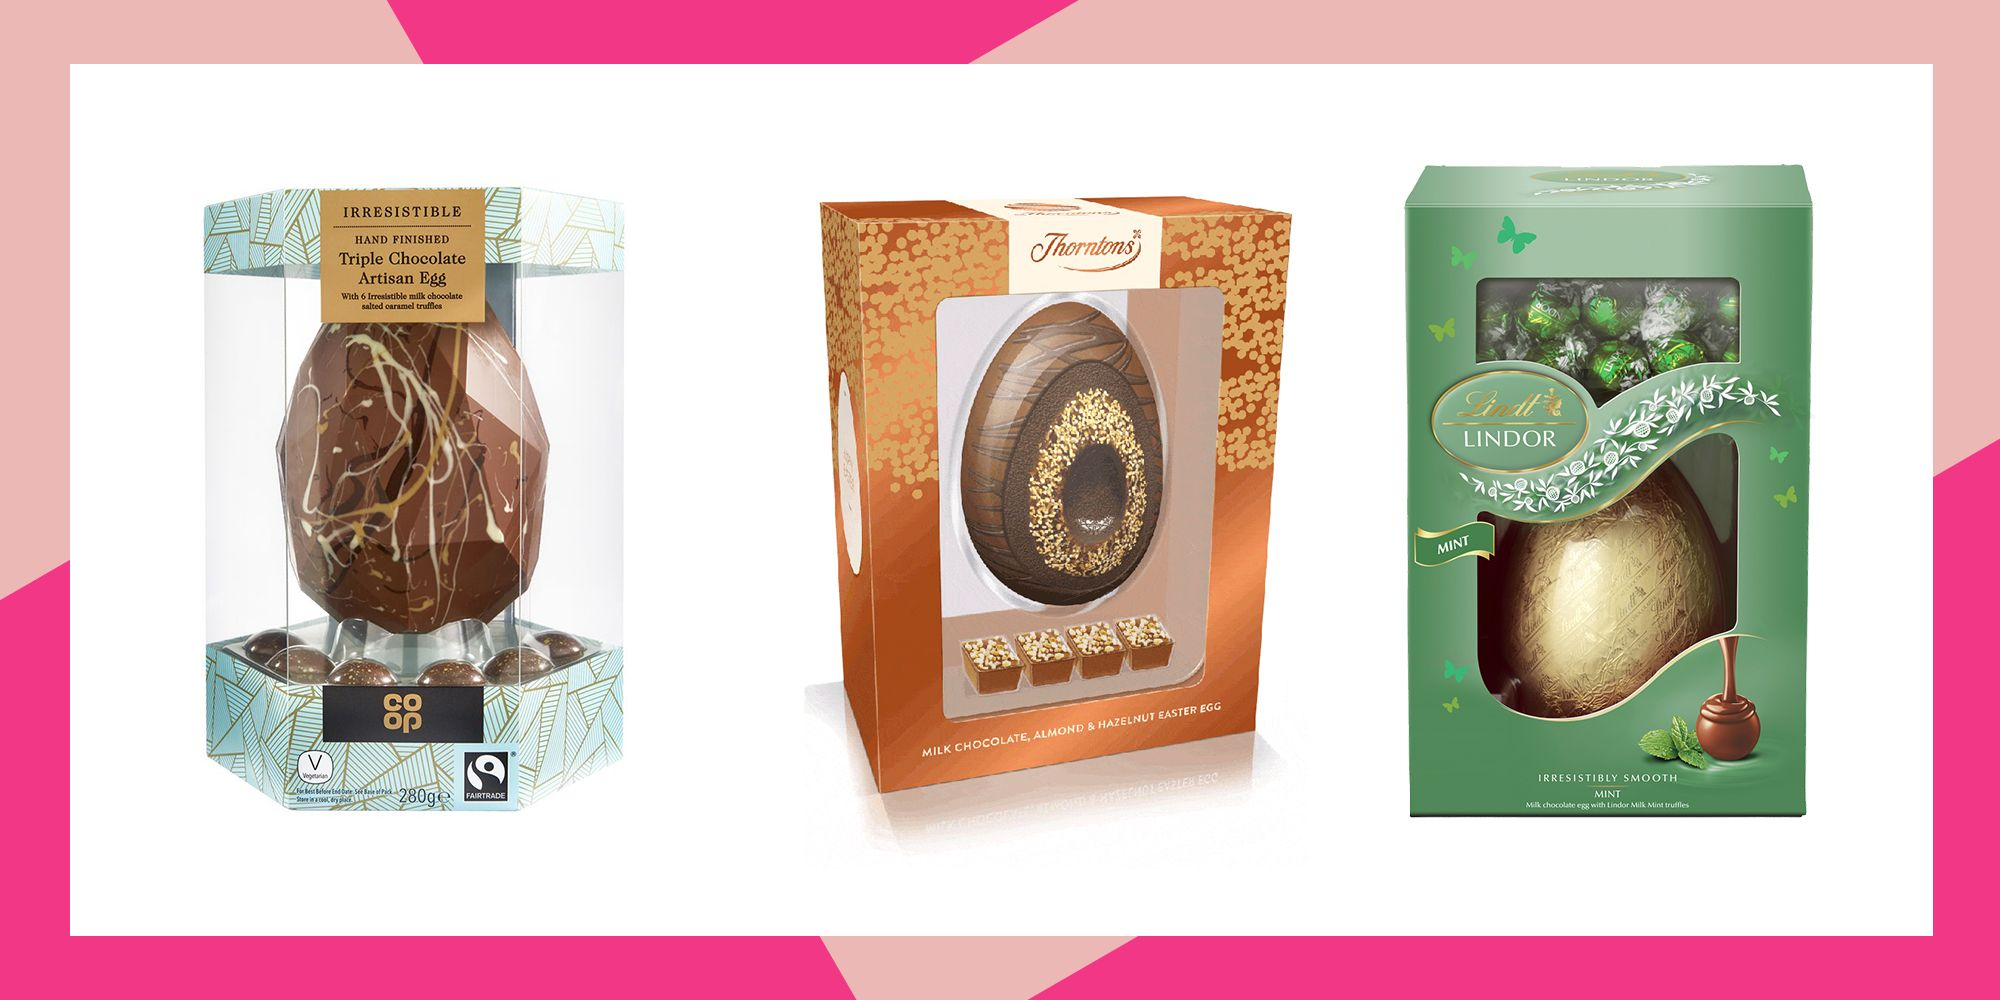 The Best Milk Chocolate Easter Eggs